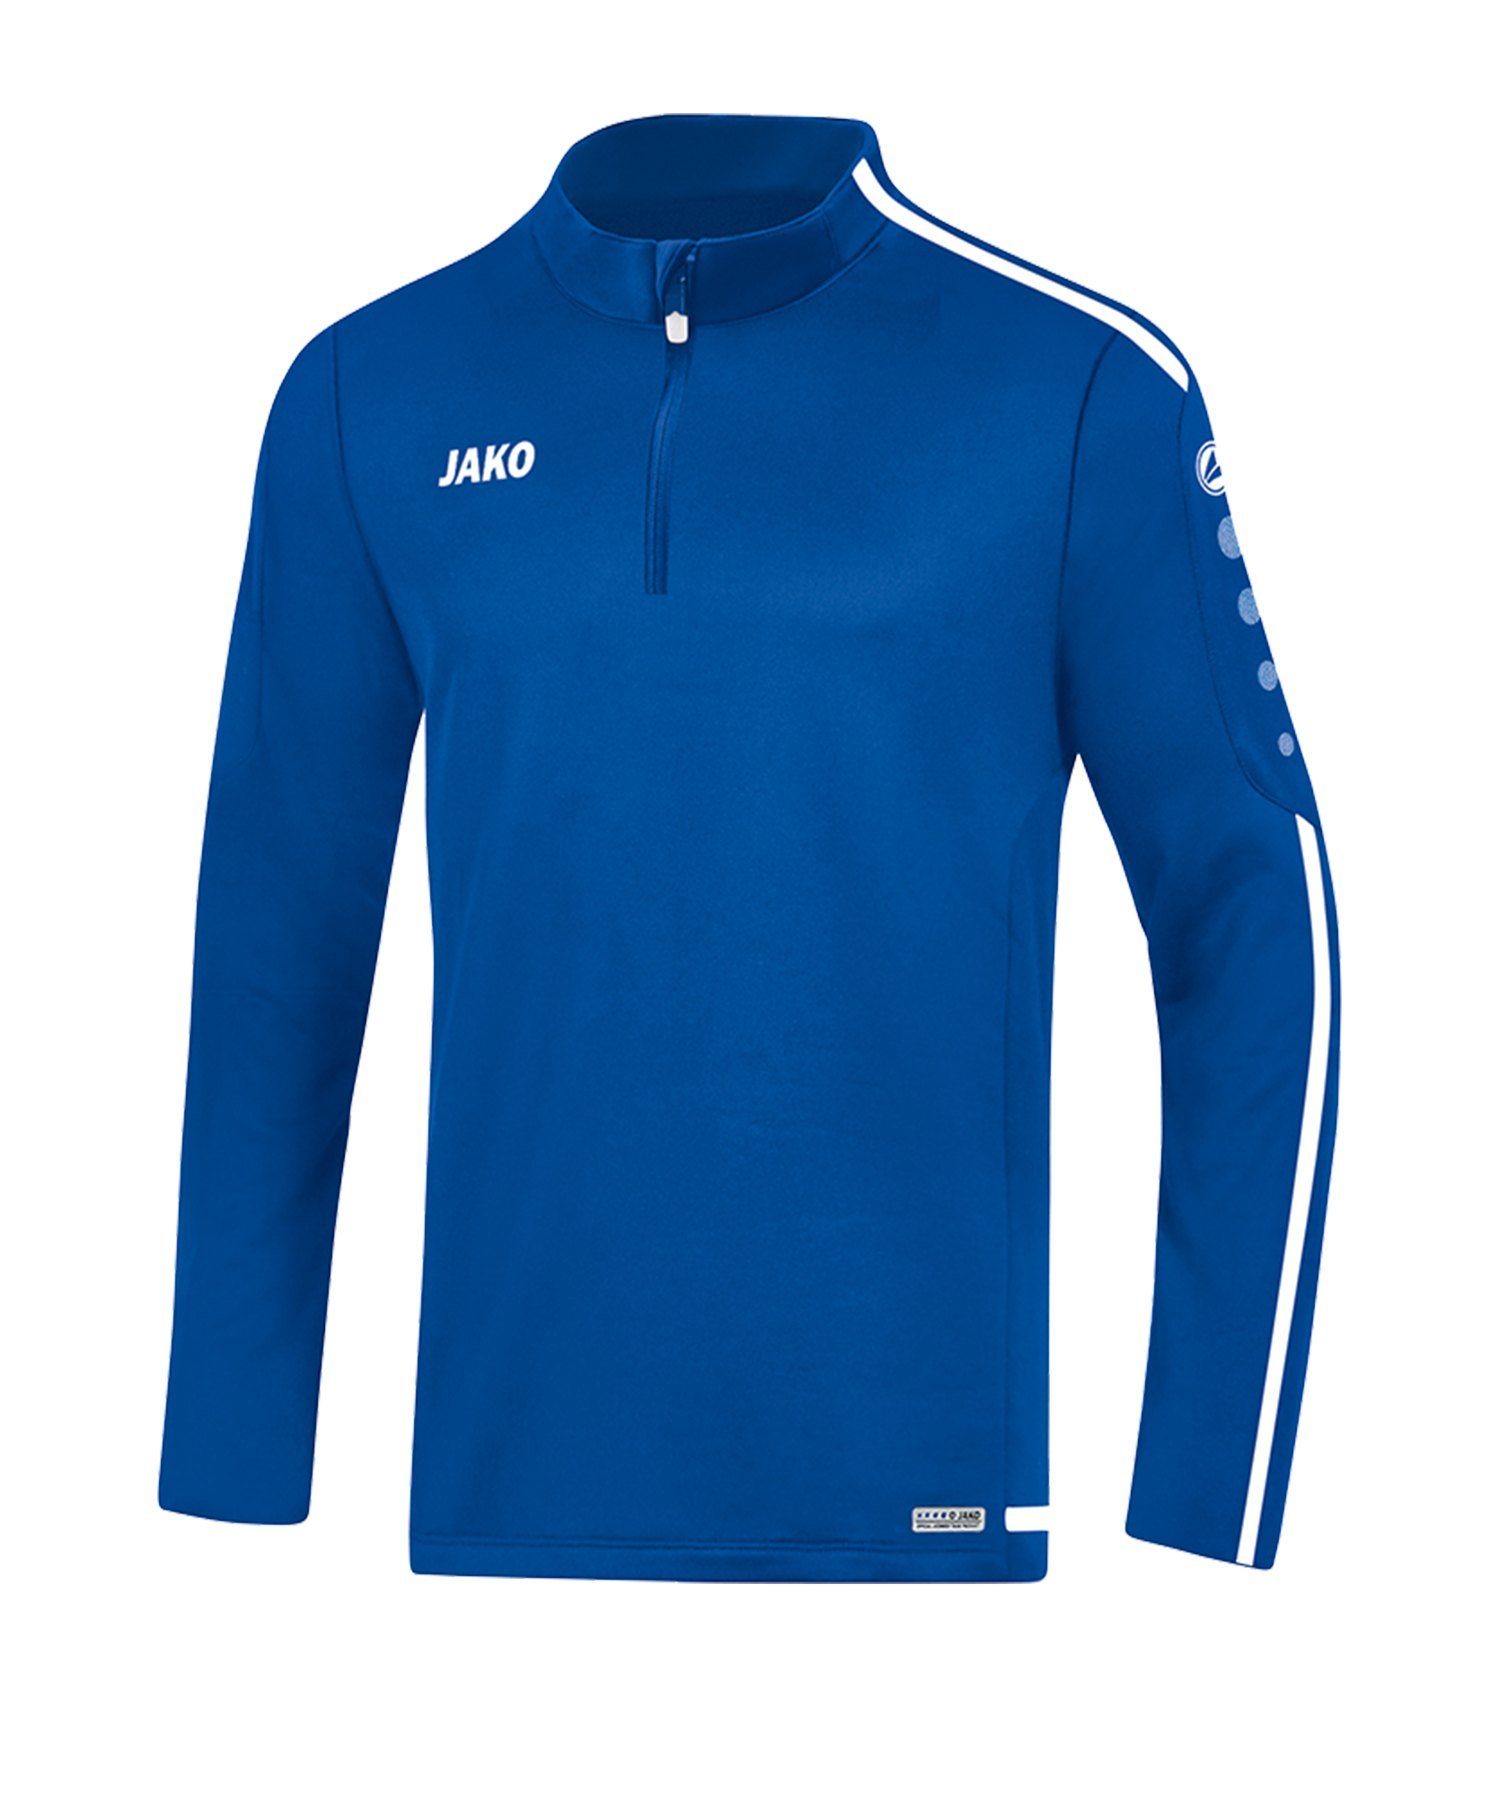 Jako Striker 2.0 Ziptop Kids Blau Weiss F04 - Blau